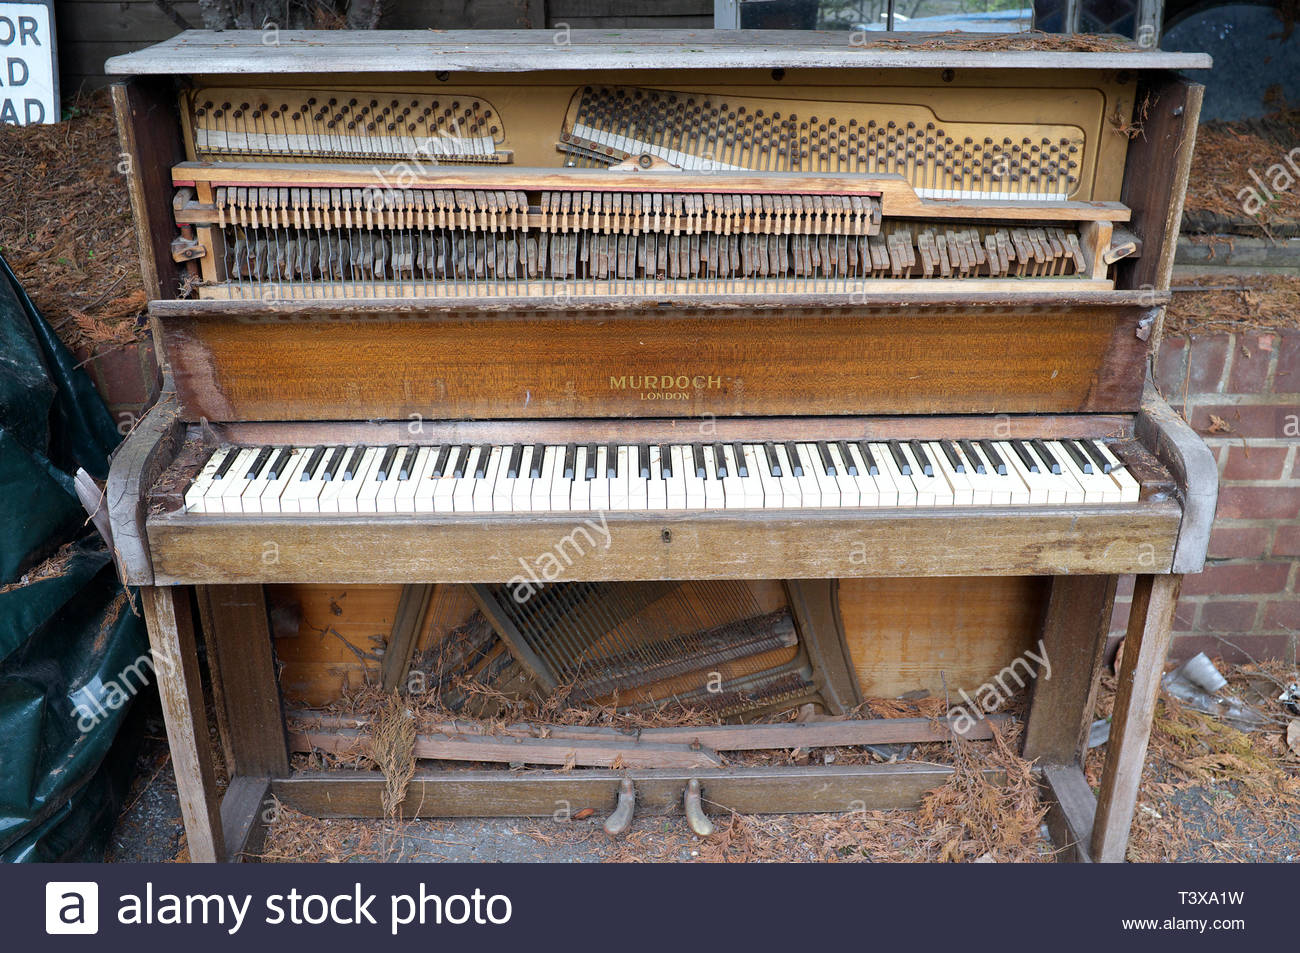 An old forlorn upright piano left outdoors, to be exposed to the elements. London, UK. Stock Photo